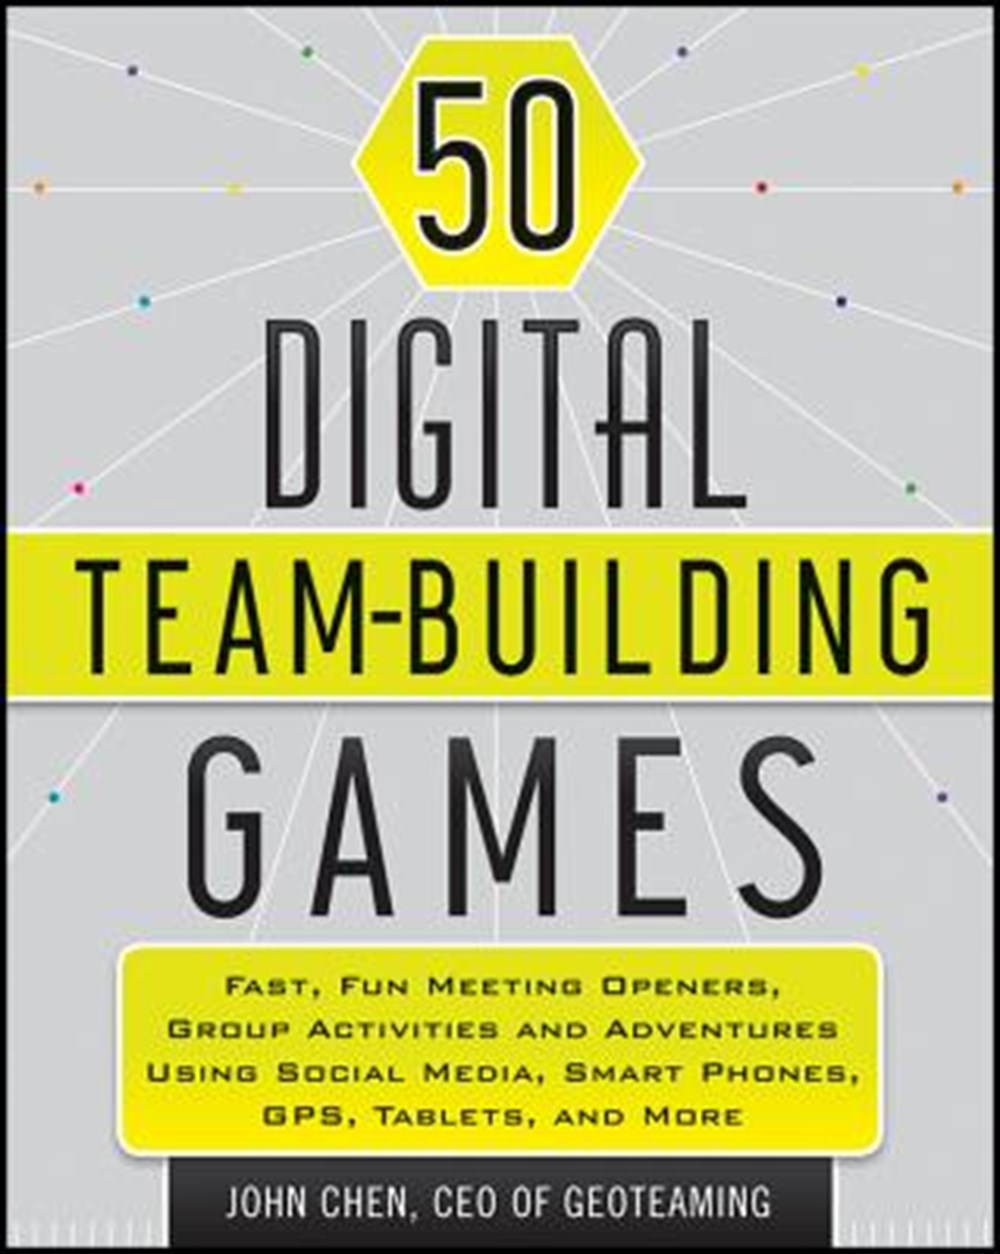 50 Digital Team-Building Games Fast, Fun Meeting Openers, Group Activities and Adventures Using Soci